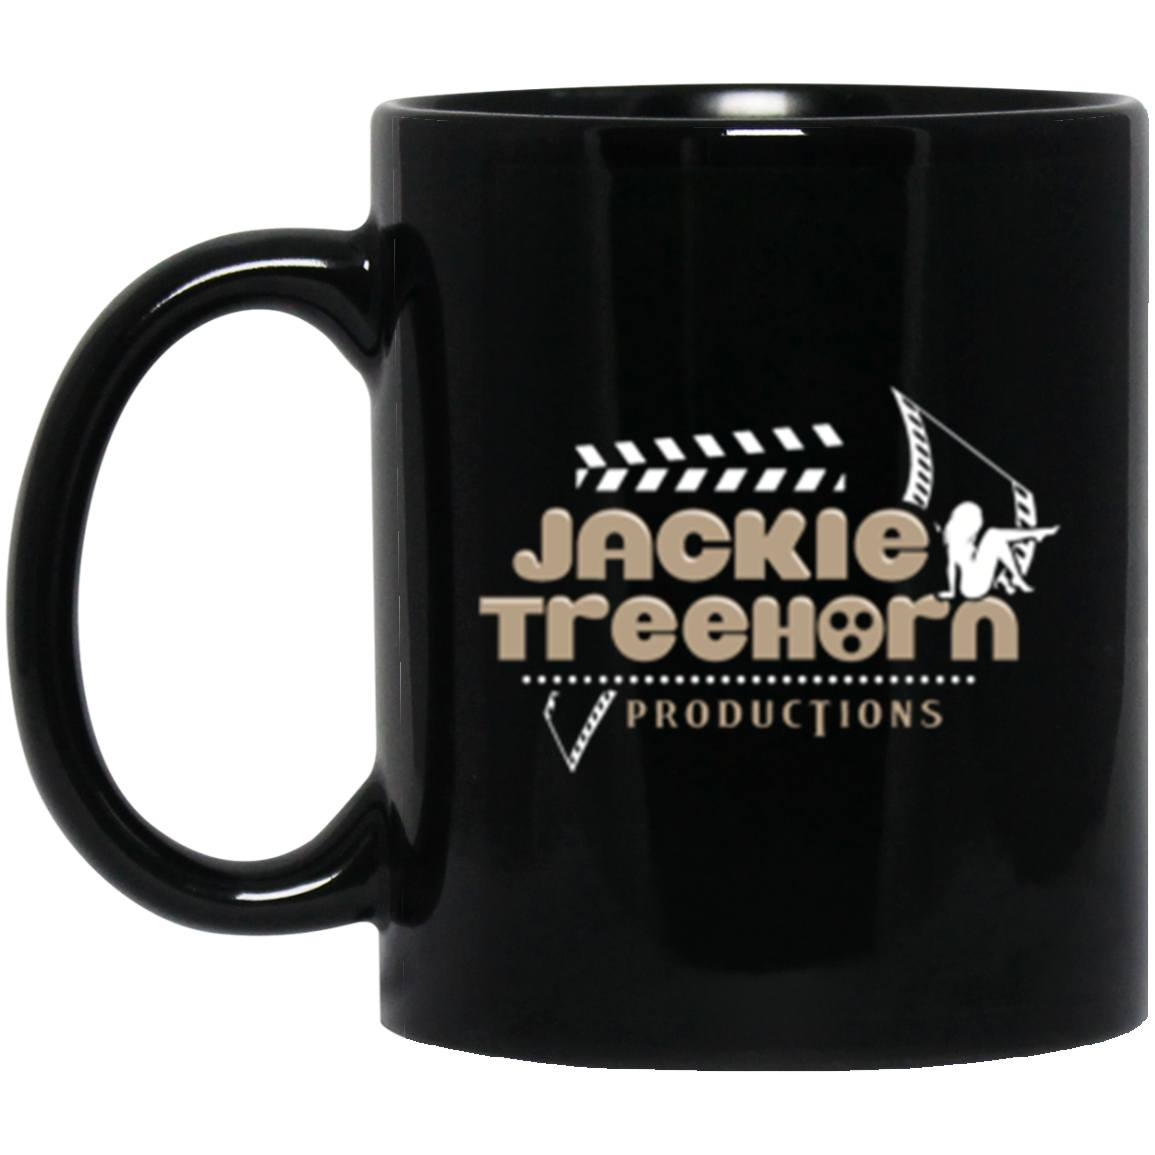 Drinkware - Jackie Treehorn Productions Mug 11oz (2-sided)